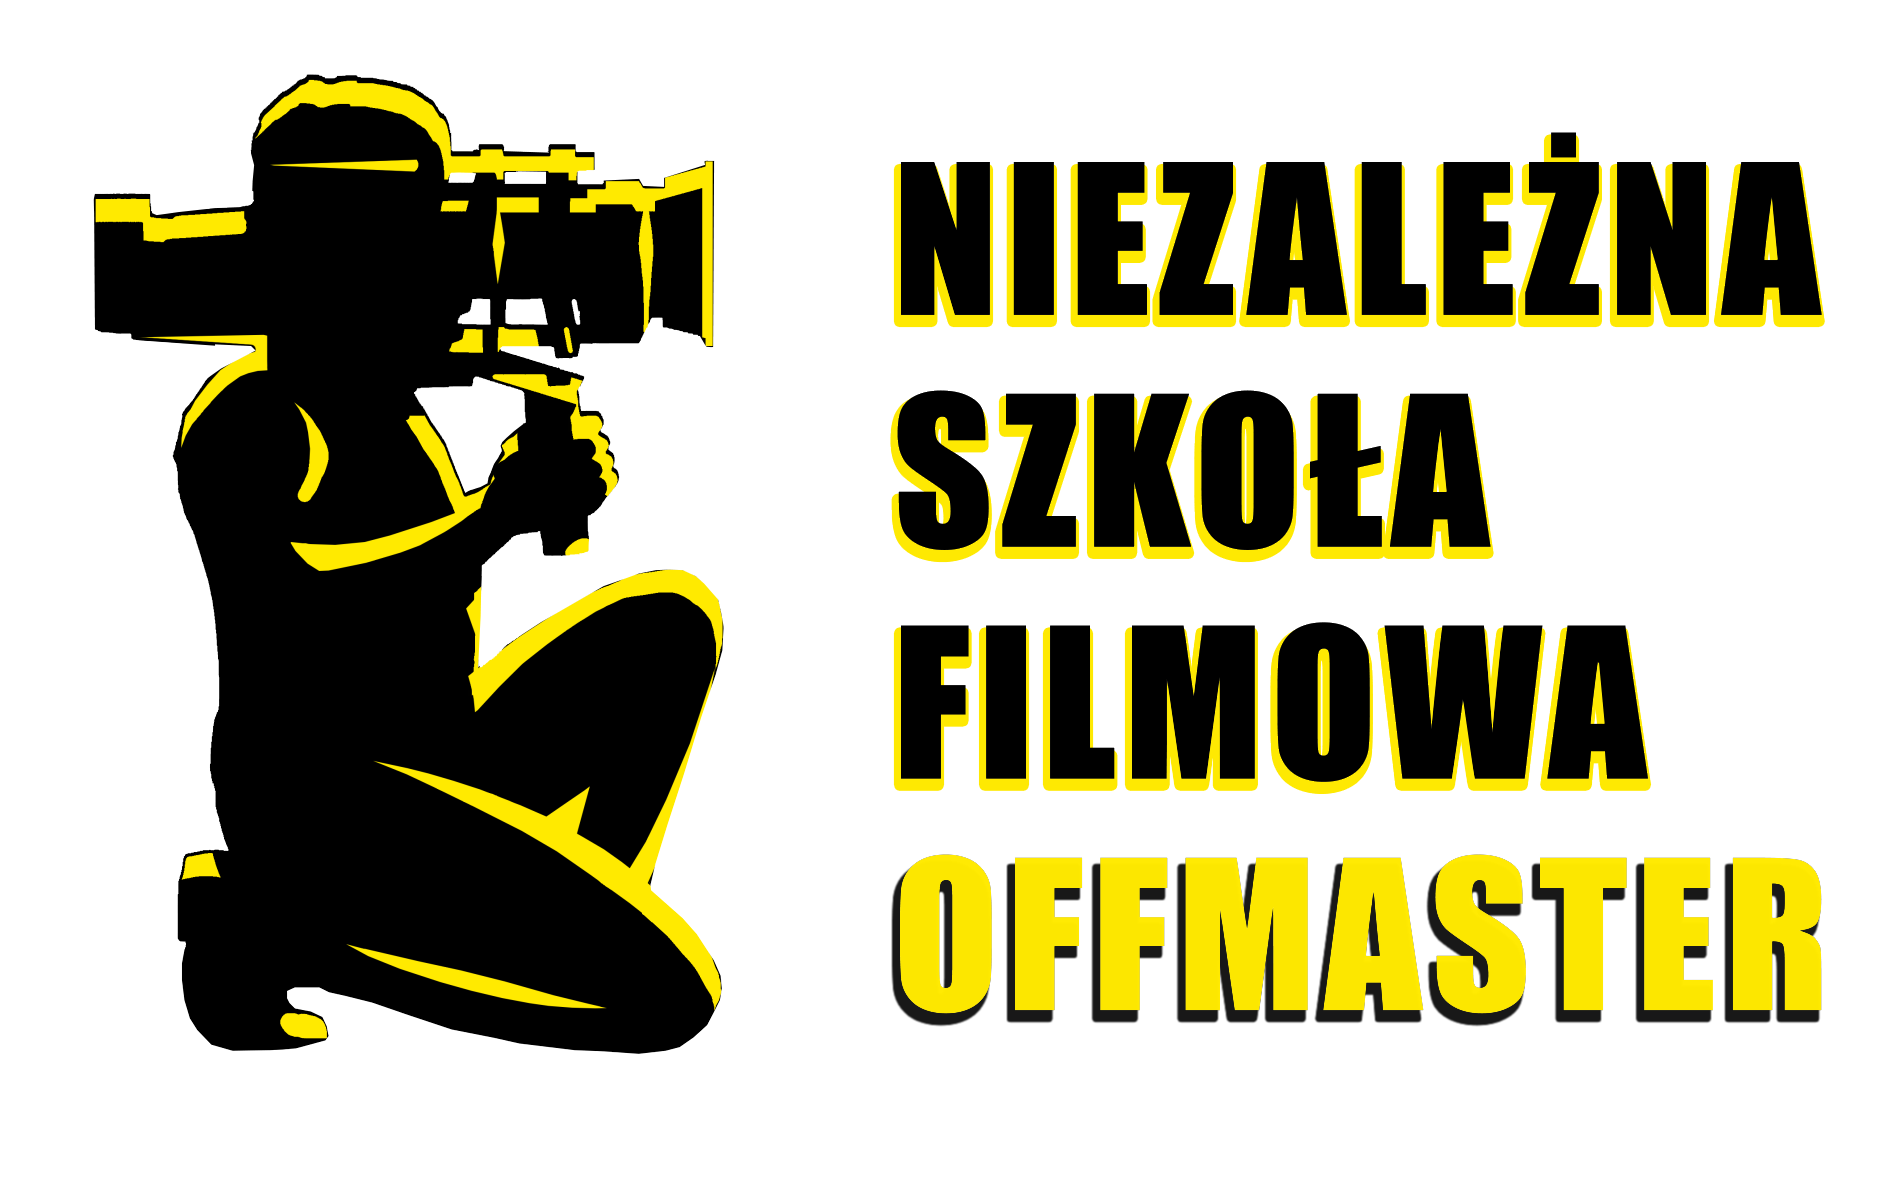 OFFMASTER